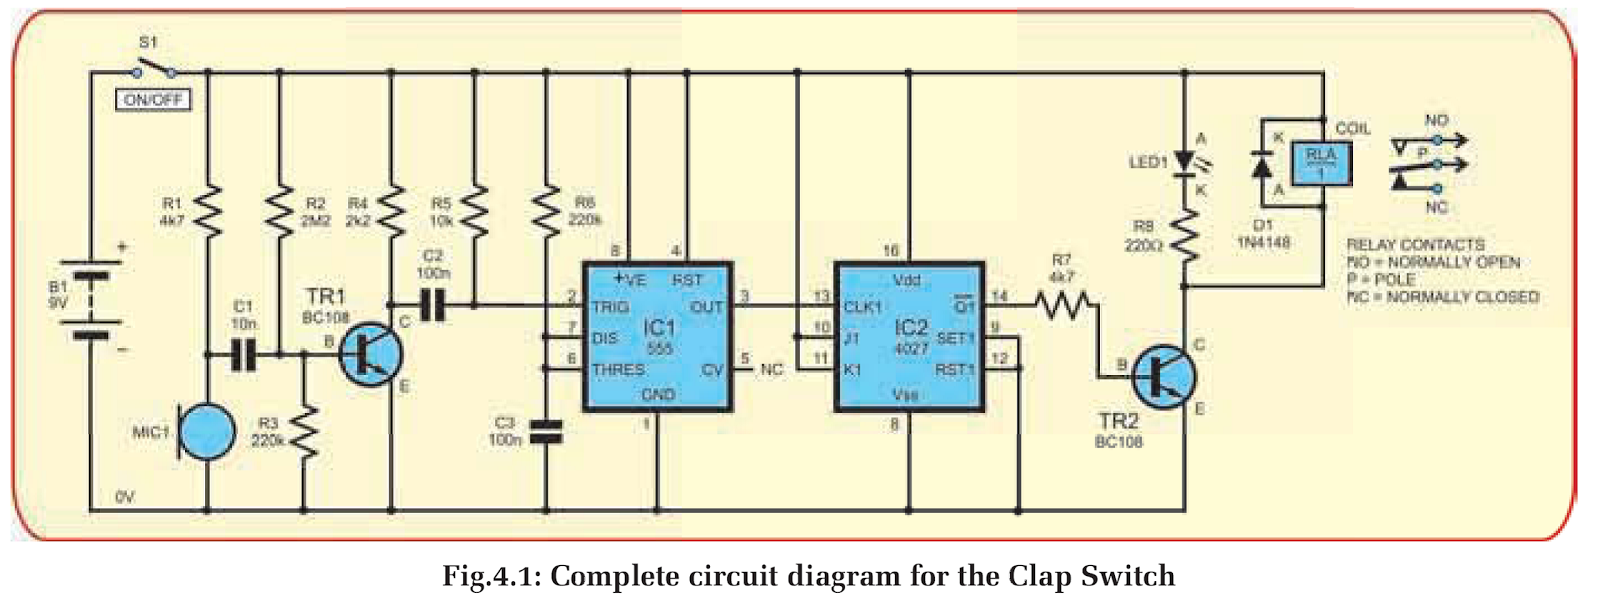 MARCH May - Clap sensitive on off relay